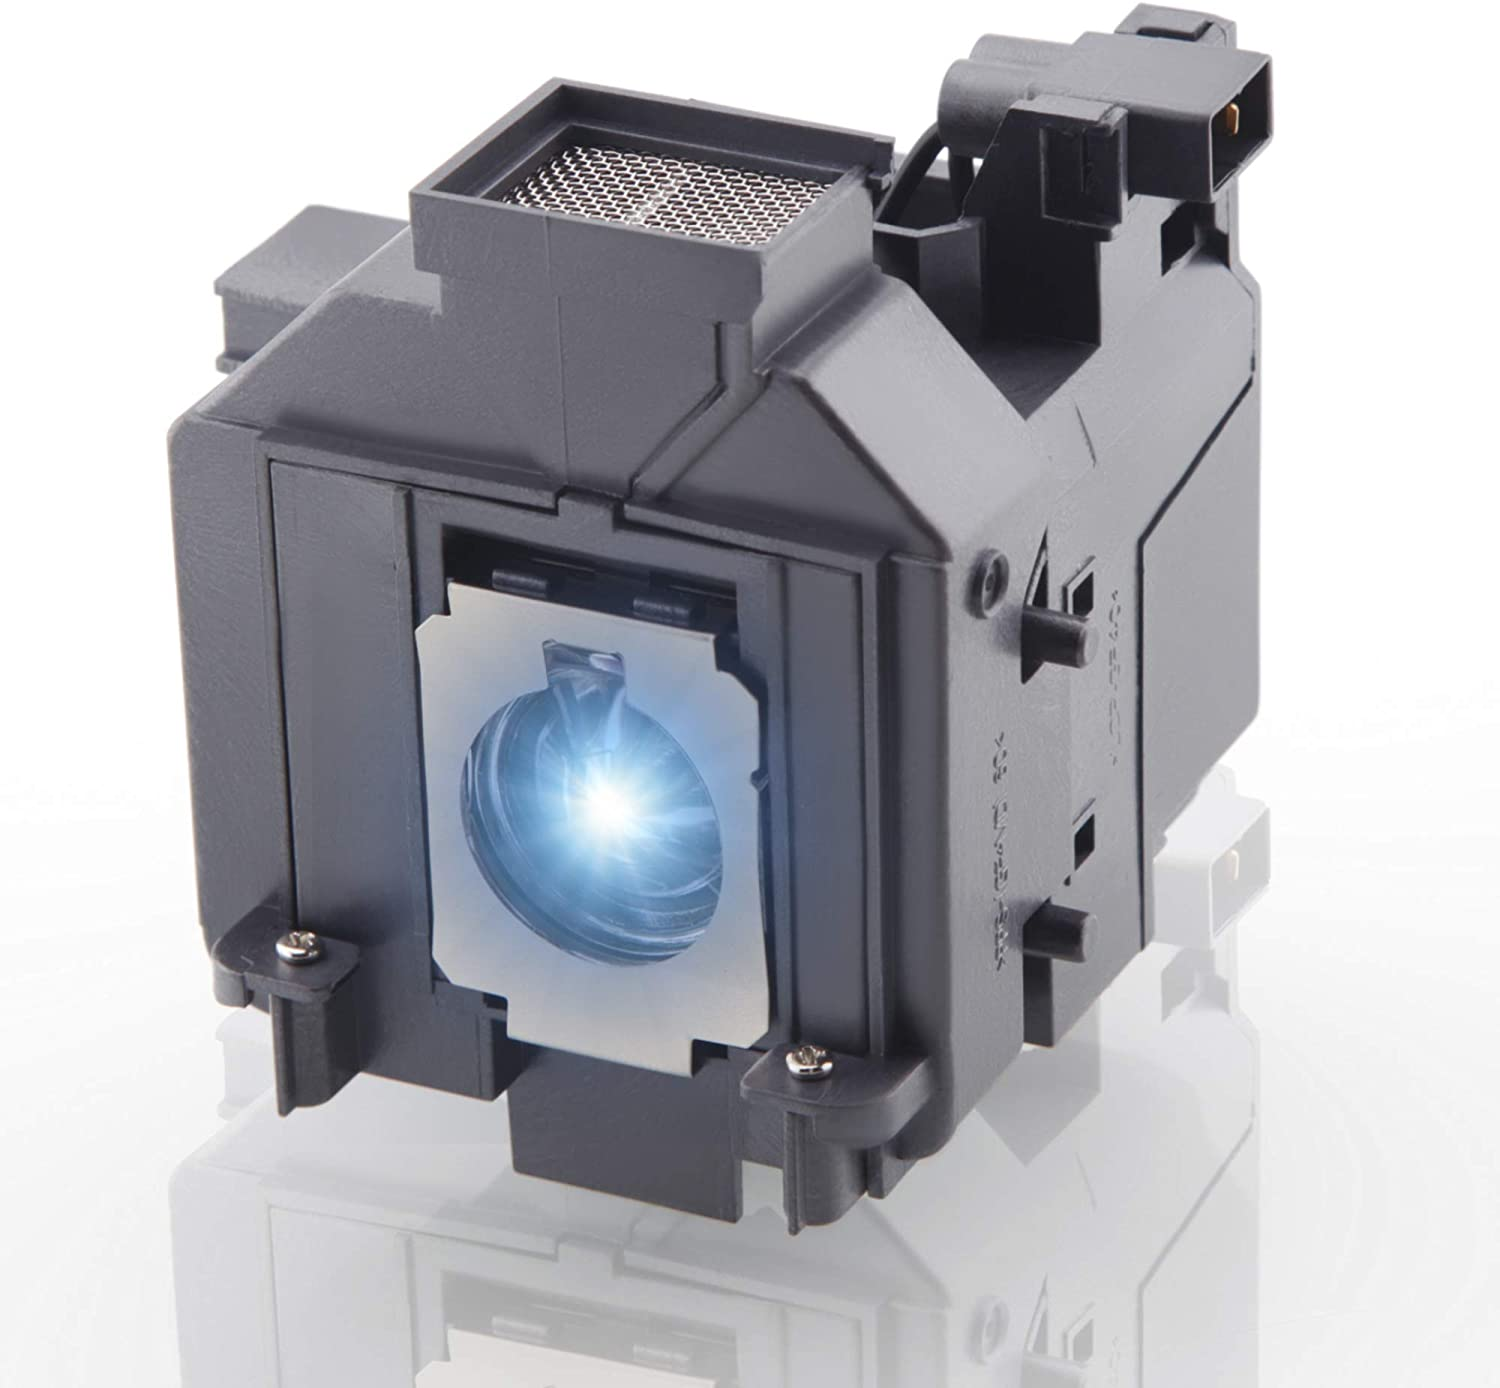 Gear By Design YHY Replacement Projector Lamp for ELPLP69 V13H010L69 for Epson Powerlite Home Cinema 5020ub 5030ub 5025ub 5020ube 5030ube 5010E 6030ub 6020UB 6010 4030 Projector lamp Bulb with Housing